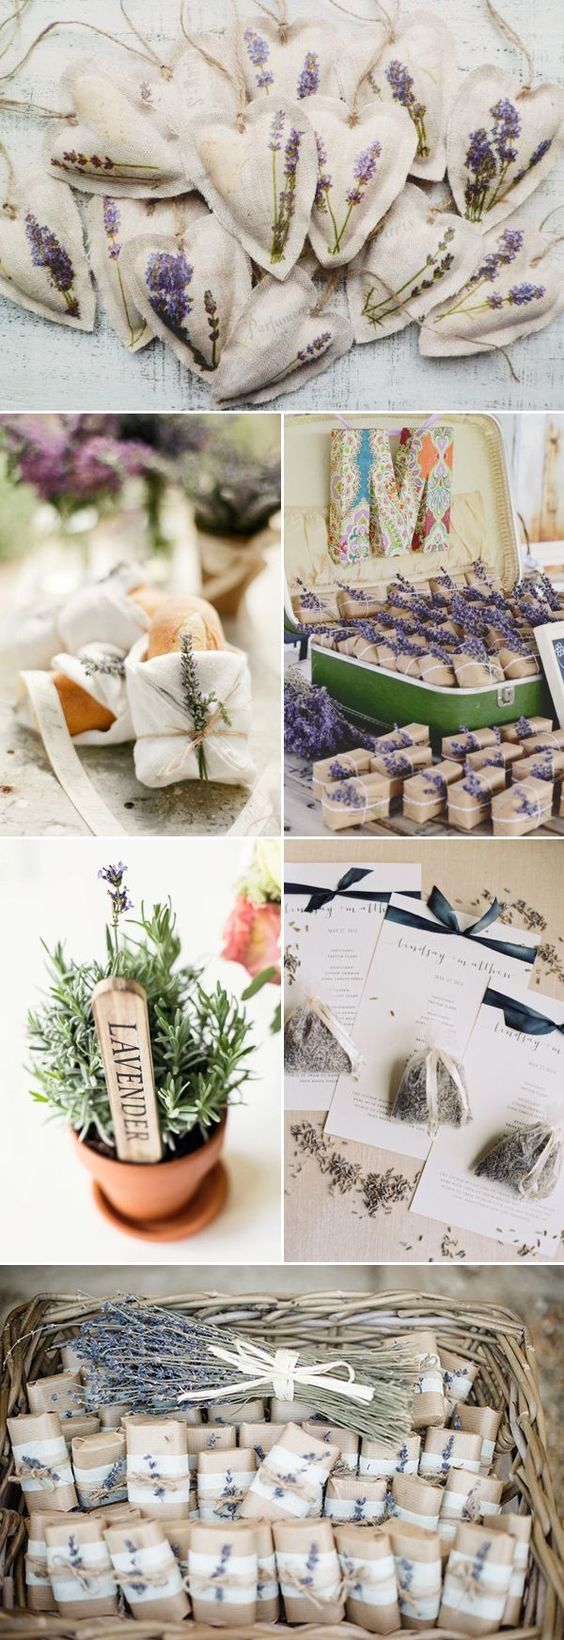 45 Romantic Ways To Decorate Your Wedding With Lavender